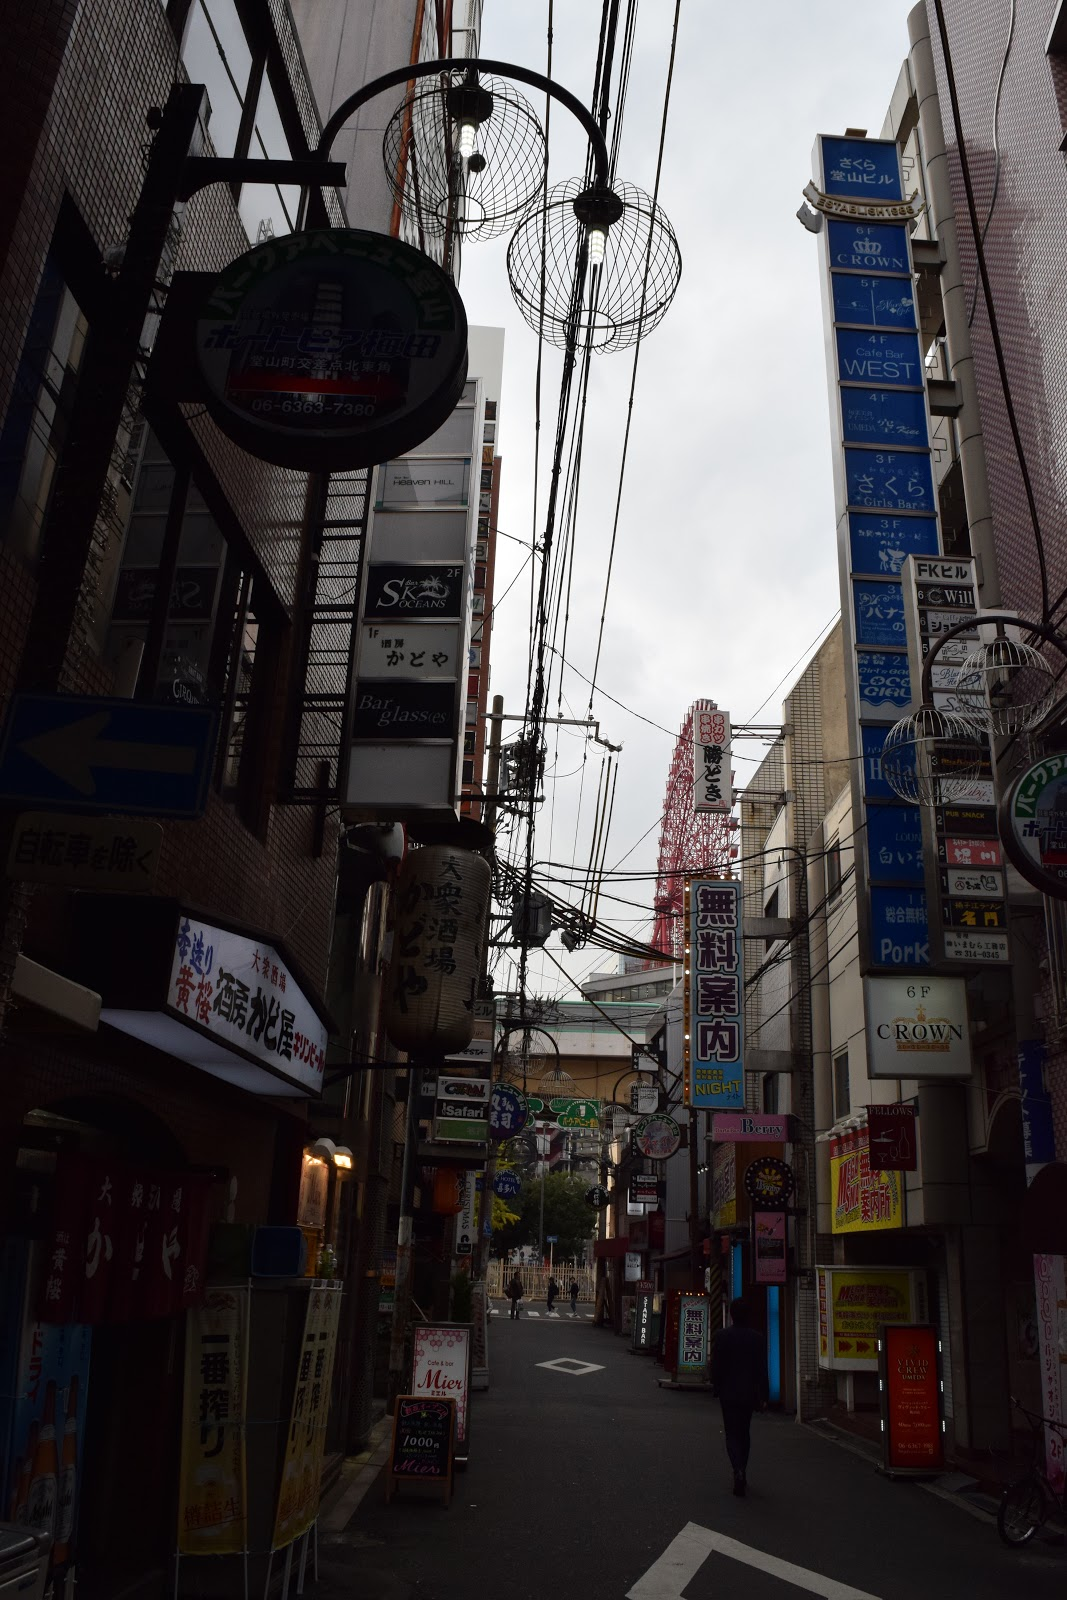 side street in Umeda, Osaka with Hep 5 ferris wheel visible in the distance